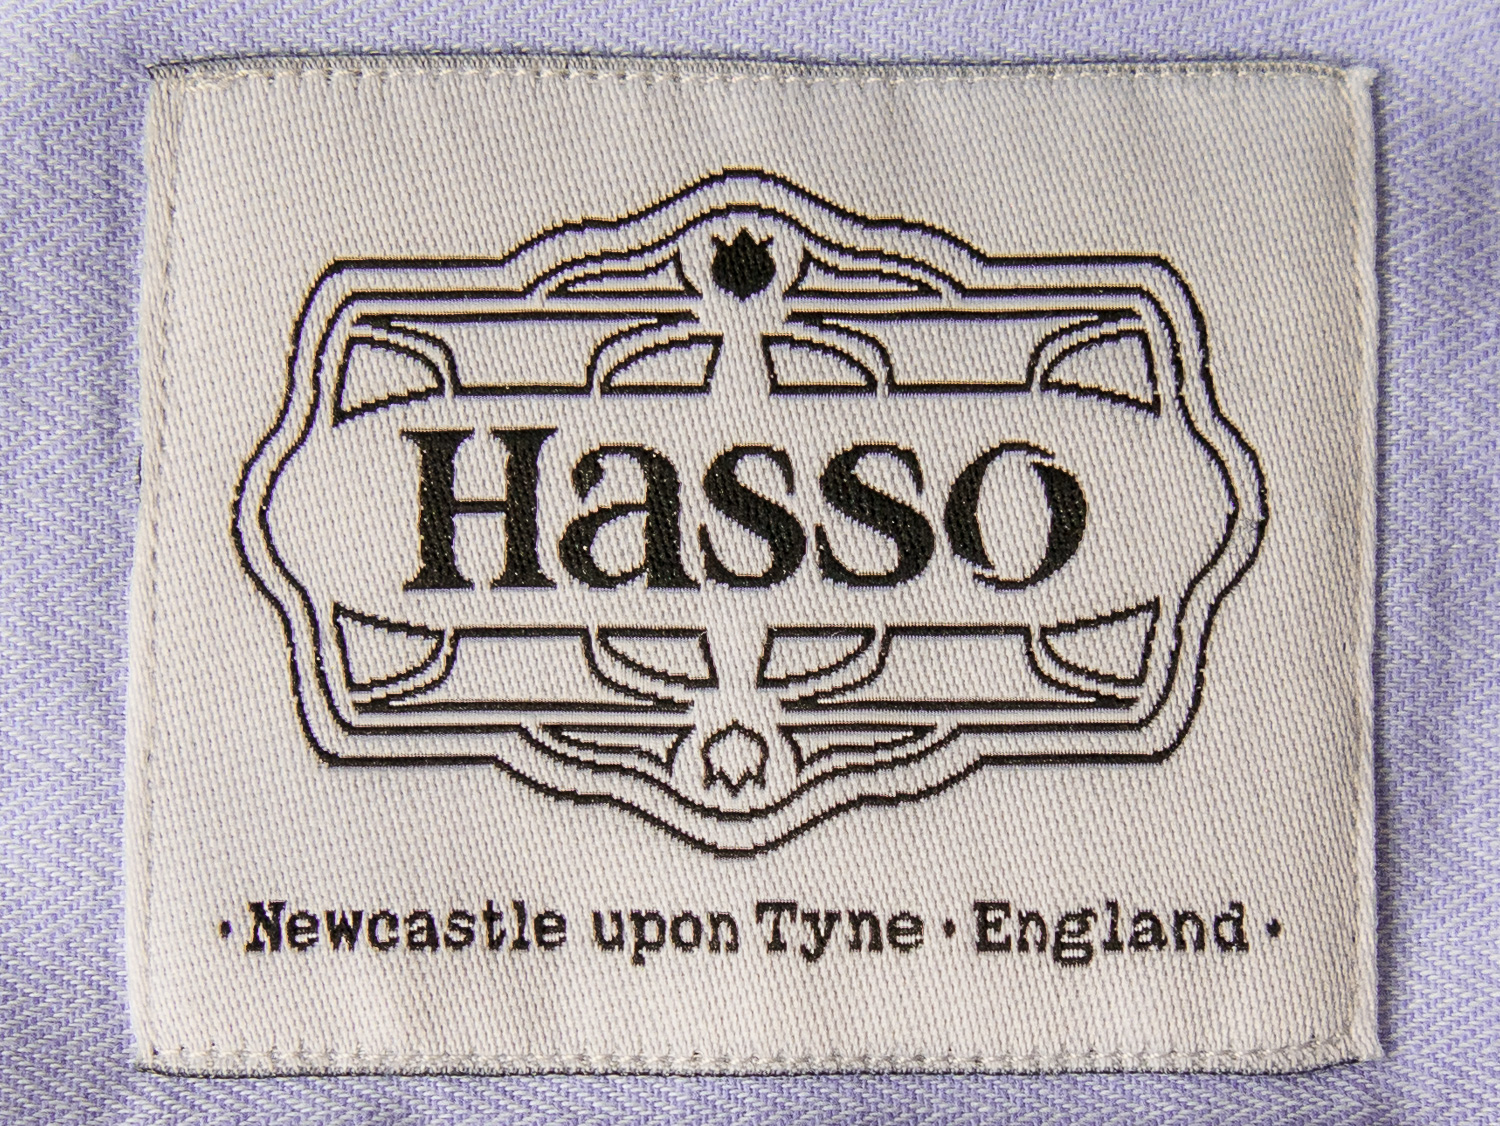 hasso_shirt_label